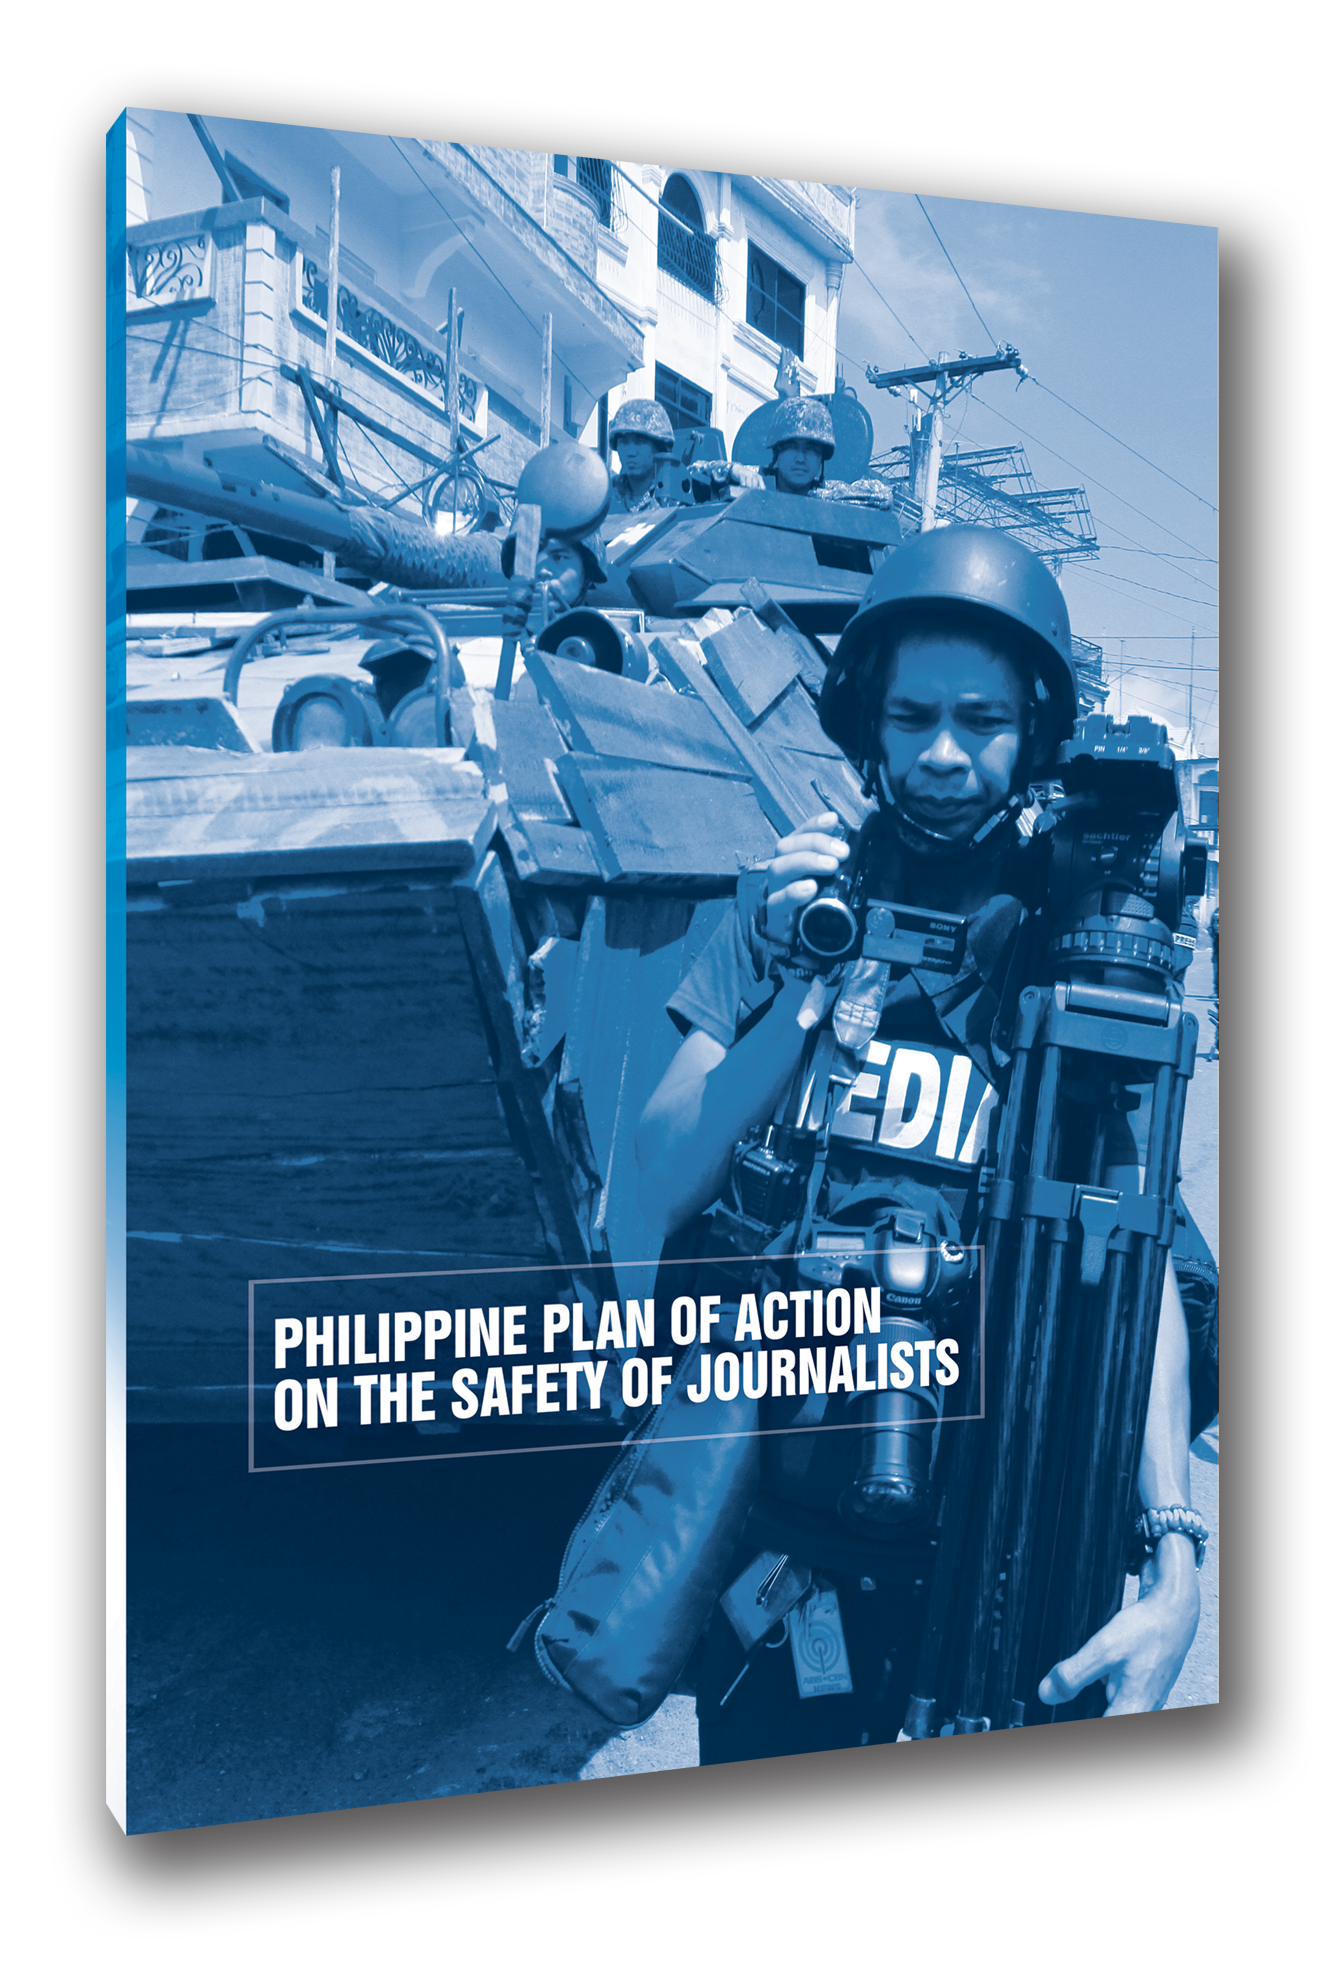 Philippine Plan of Action for the Safety of Journalists